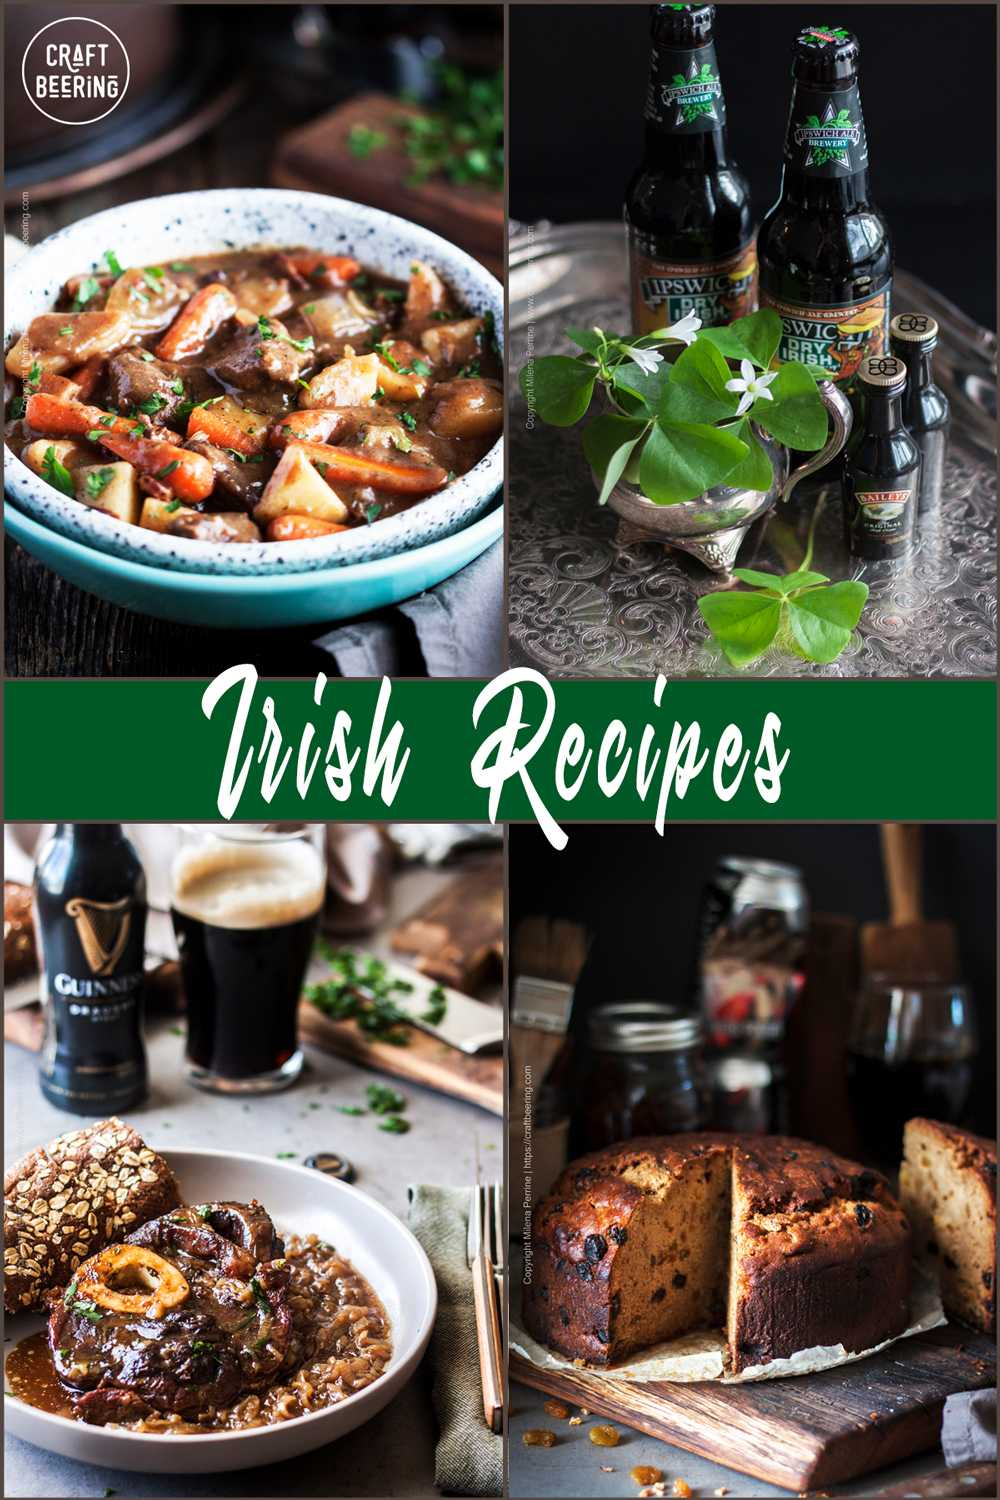 Irish recipes - from starters to desserts, cocktails included